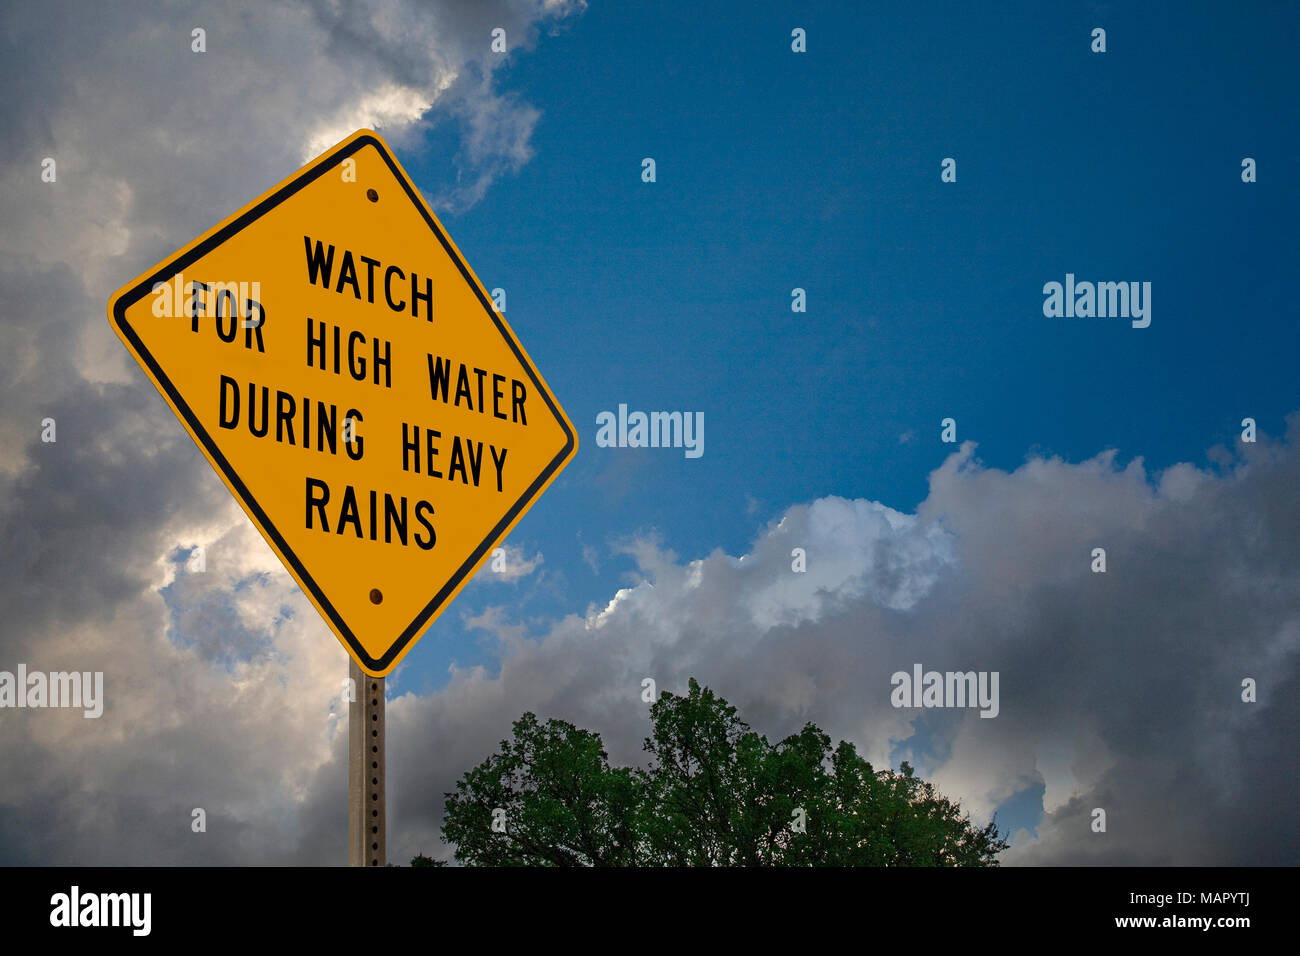 High Water Warning Sign In a Horizontal Format - Stock Image